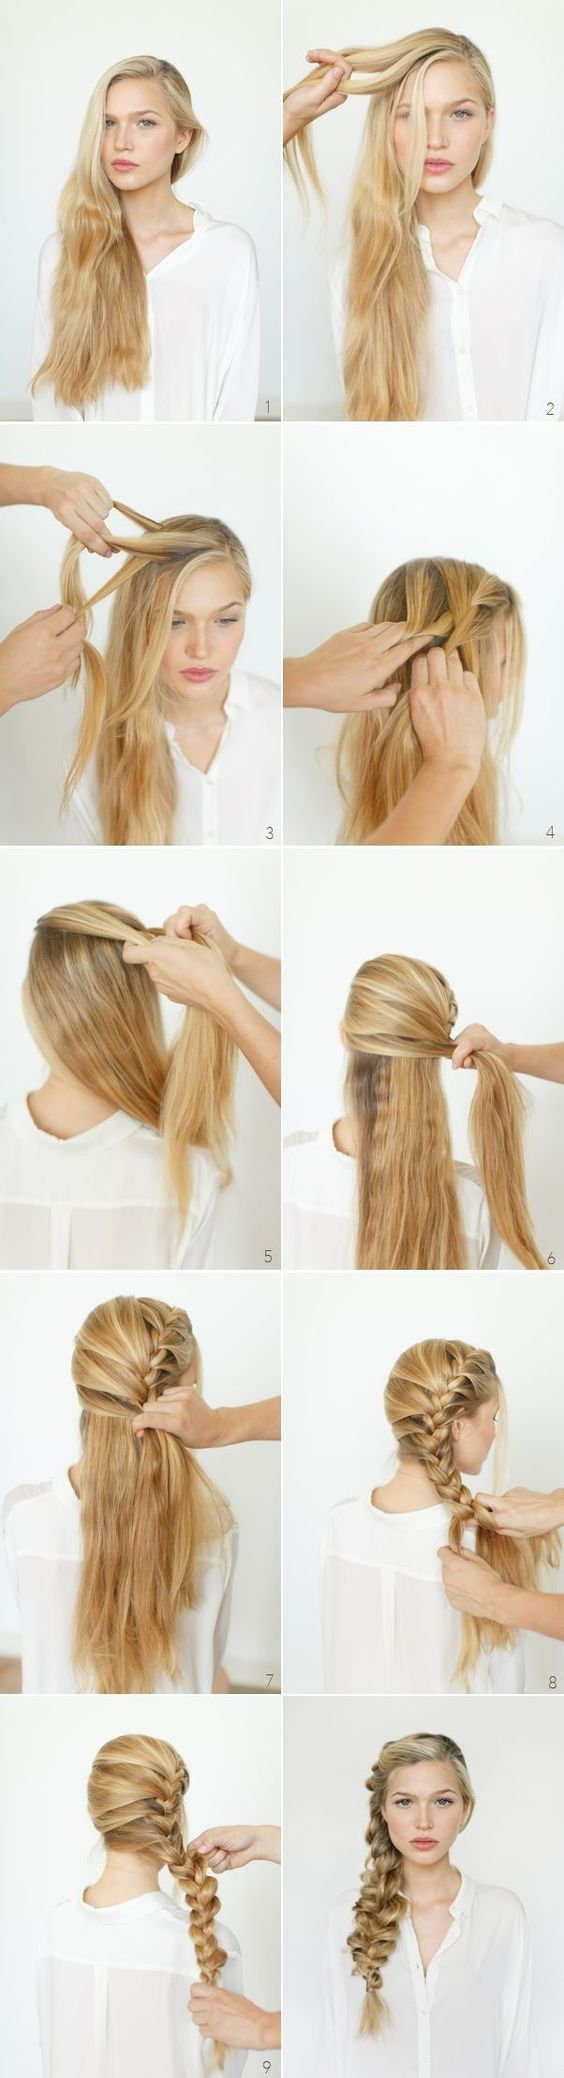 How to Make A Romantic Loose Side Braided Hairstyle - The Clothes Maiden